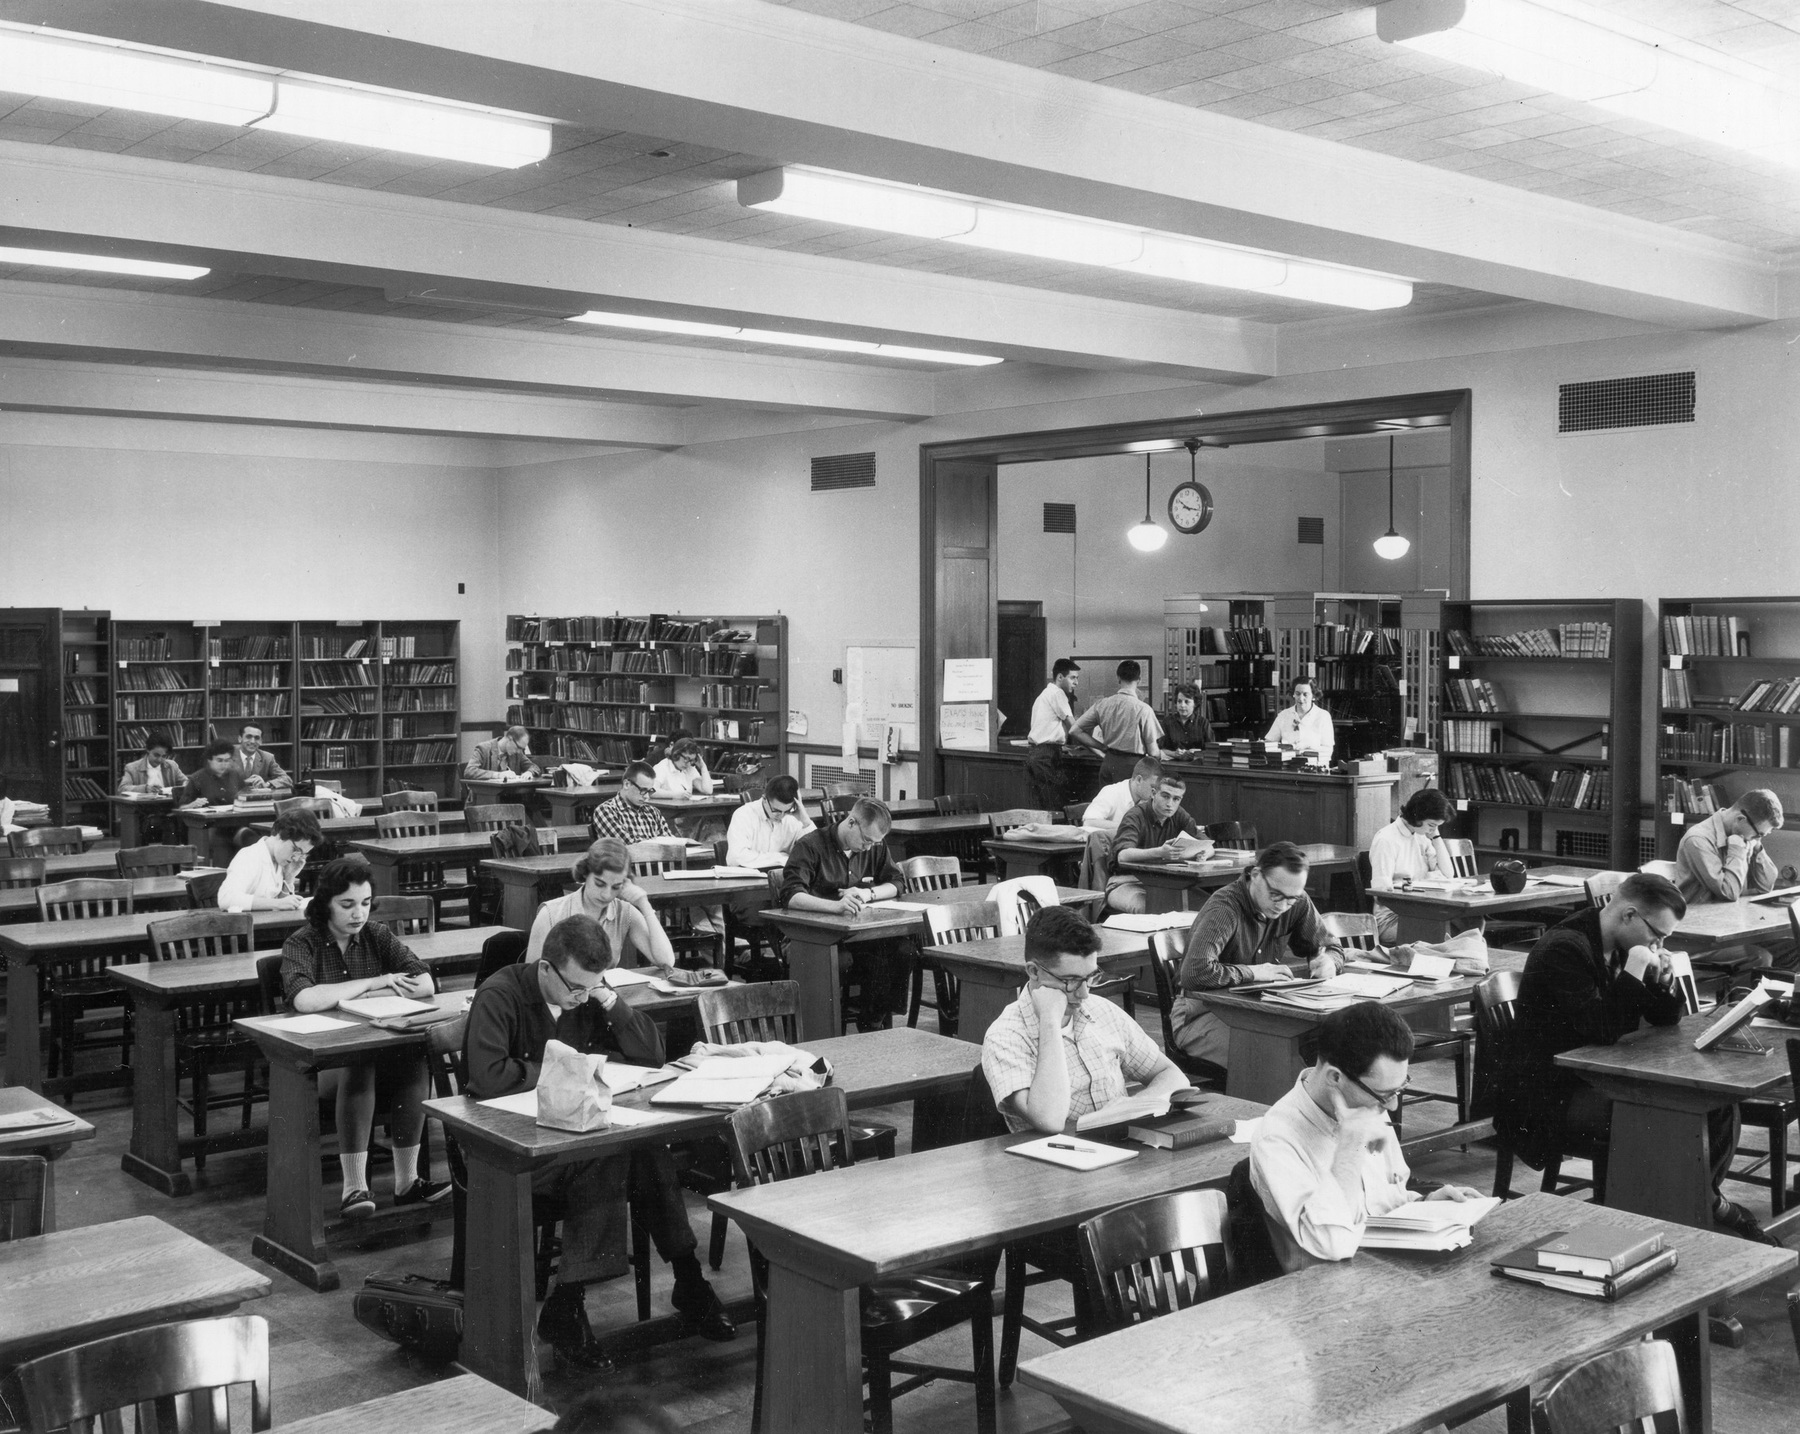 Rush Rhees Library: Reserve Reading Room (1930)